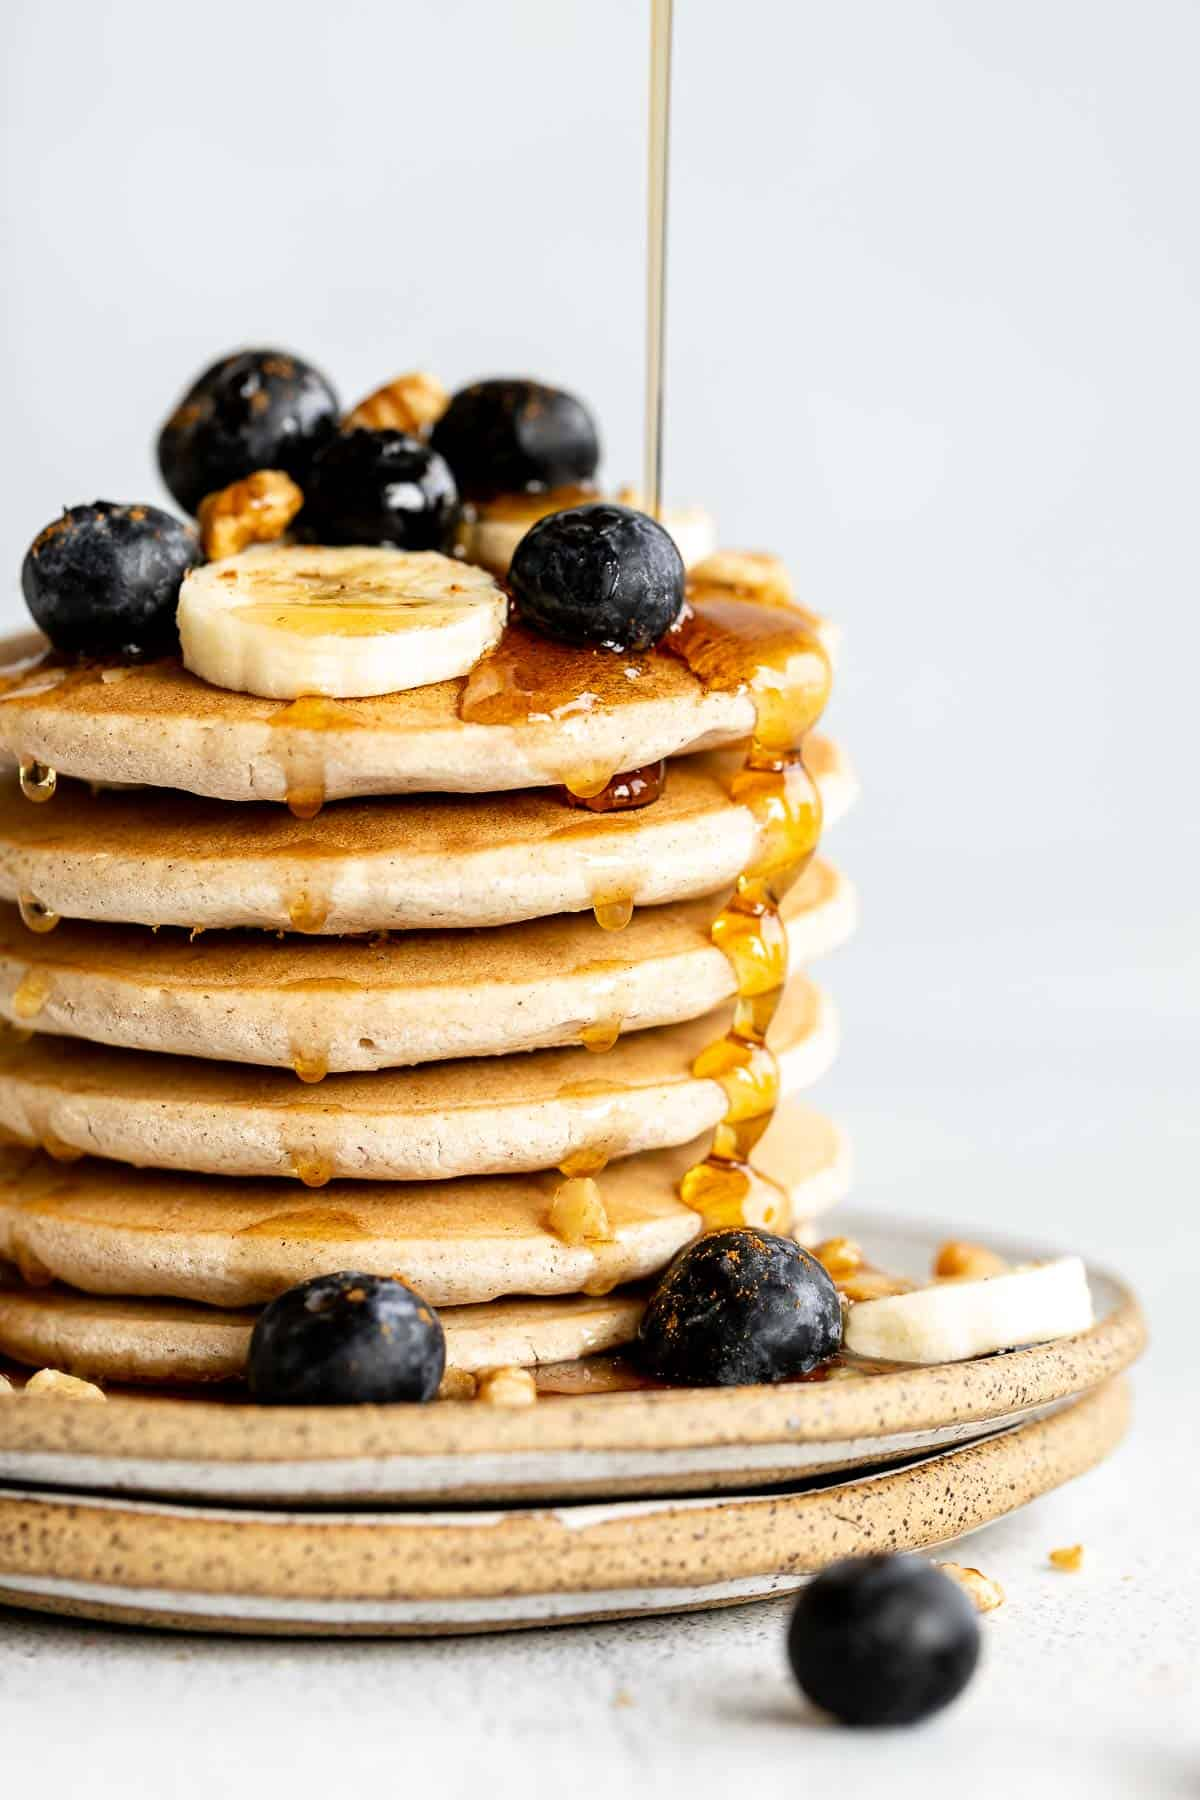 up close of the stack of pancakes with maple syrup drips